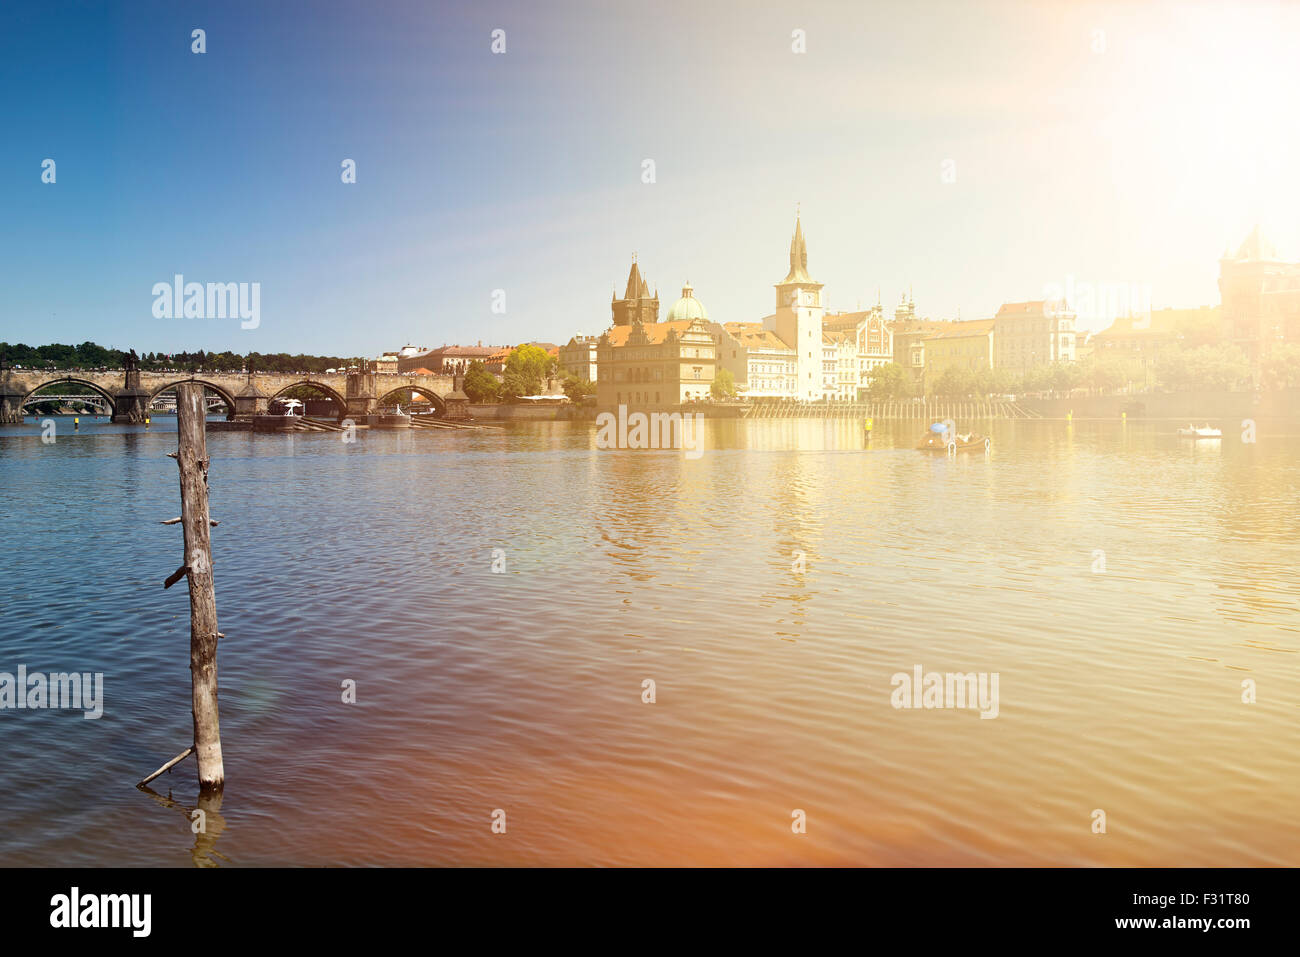 Scenic summer view of the Old Town ancient architecture and Vltava river pier in Prague, Czech Republic - Stock Image